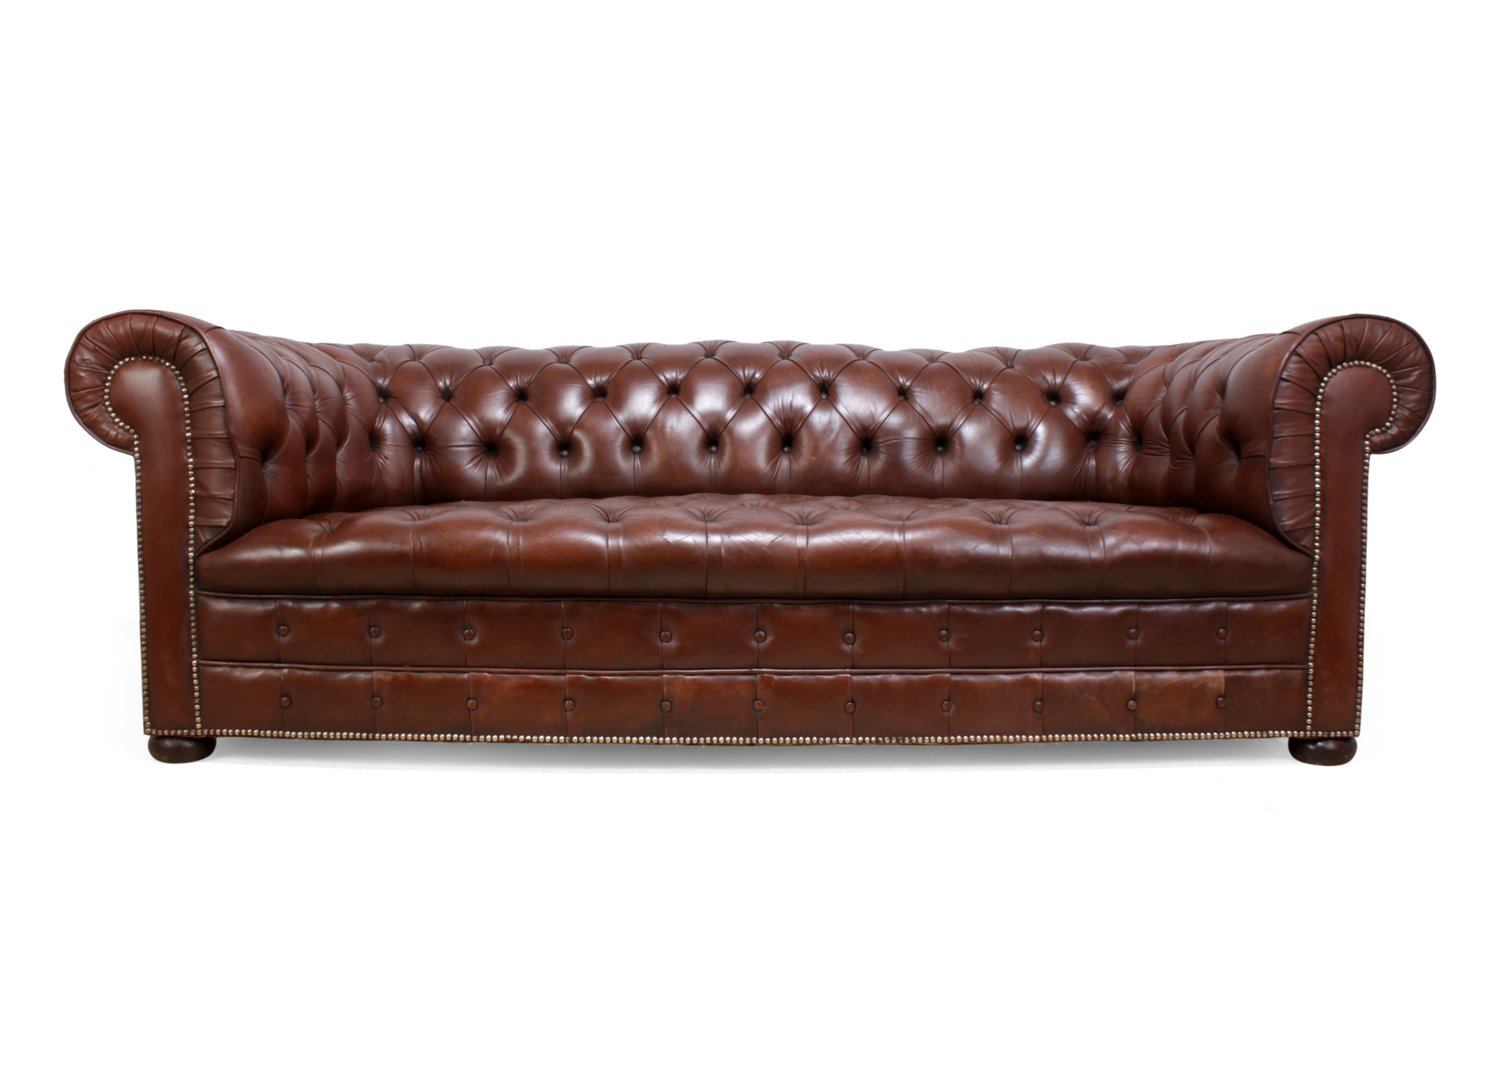 Chesterfield Vintage Sofa Vintage Brown Leather Chesterfield Sofa 1960s 74829